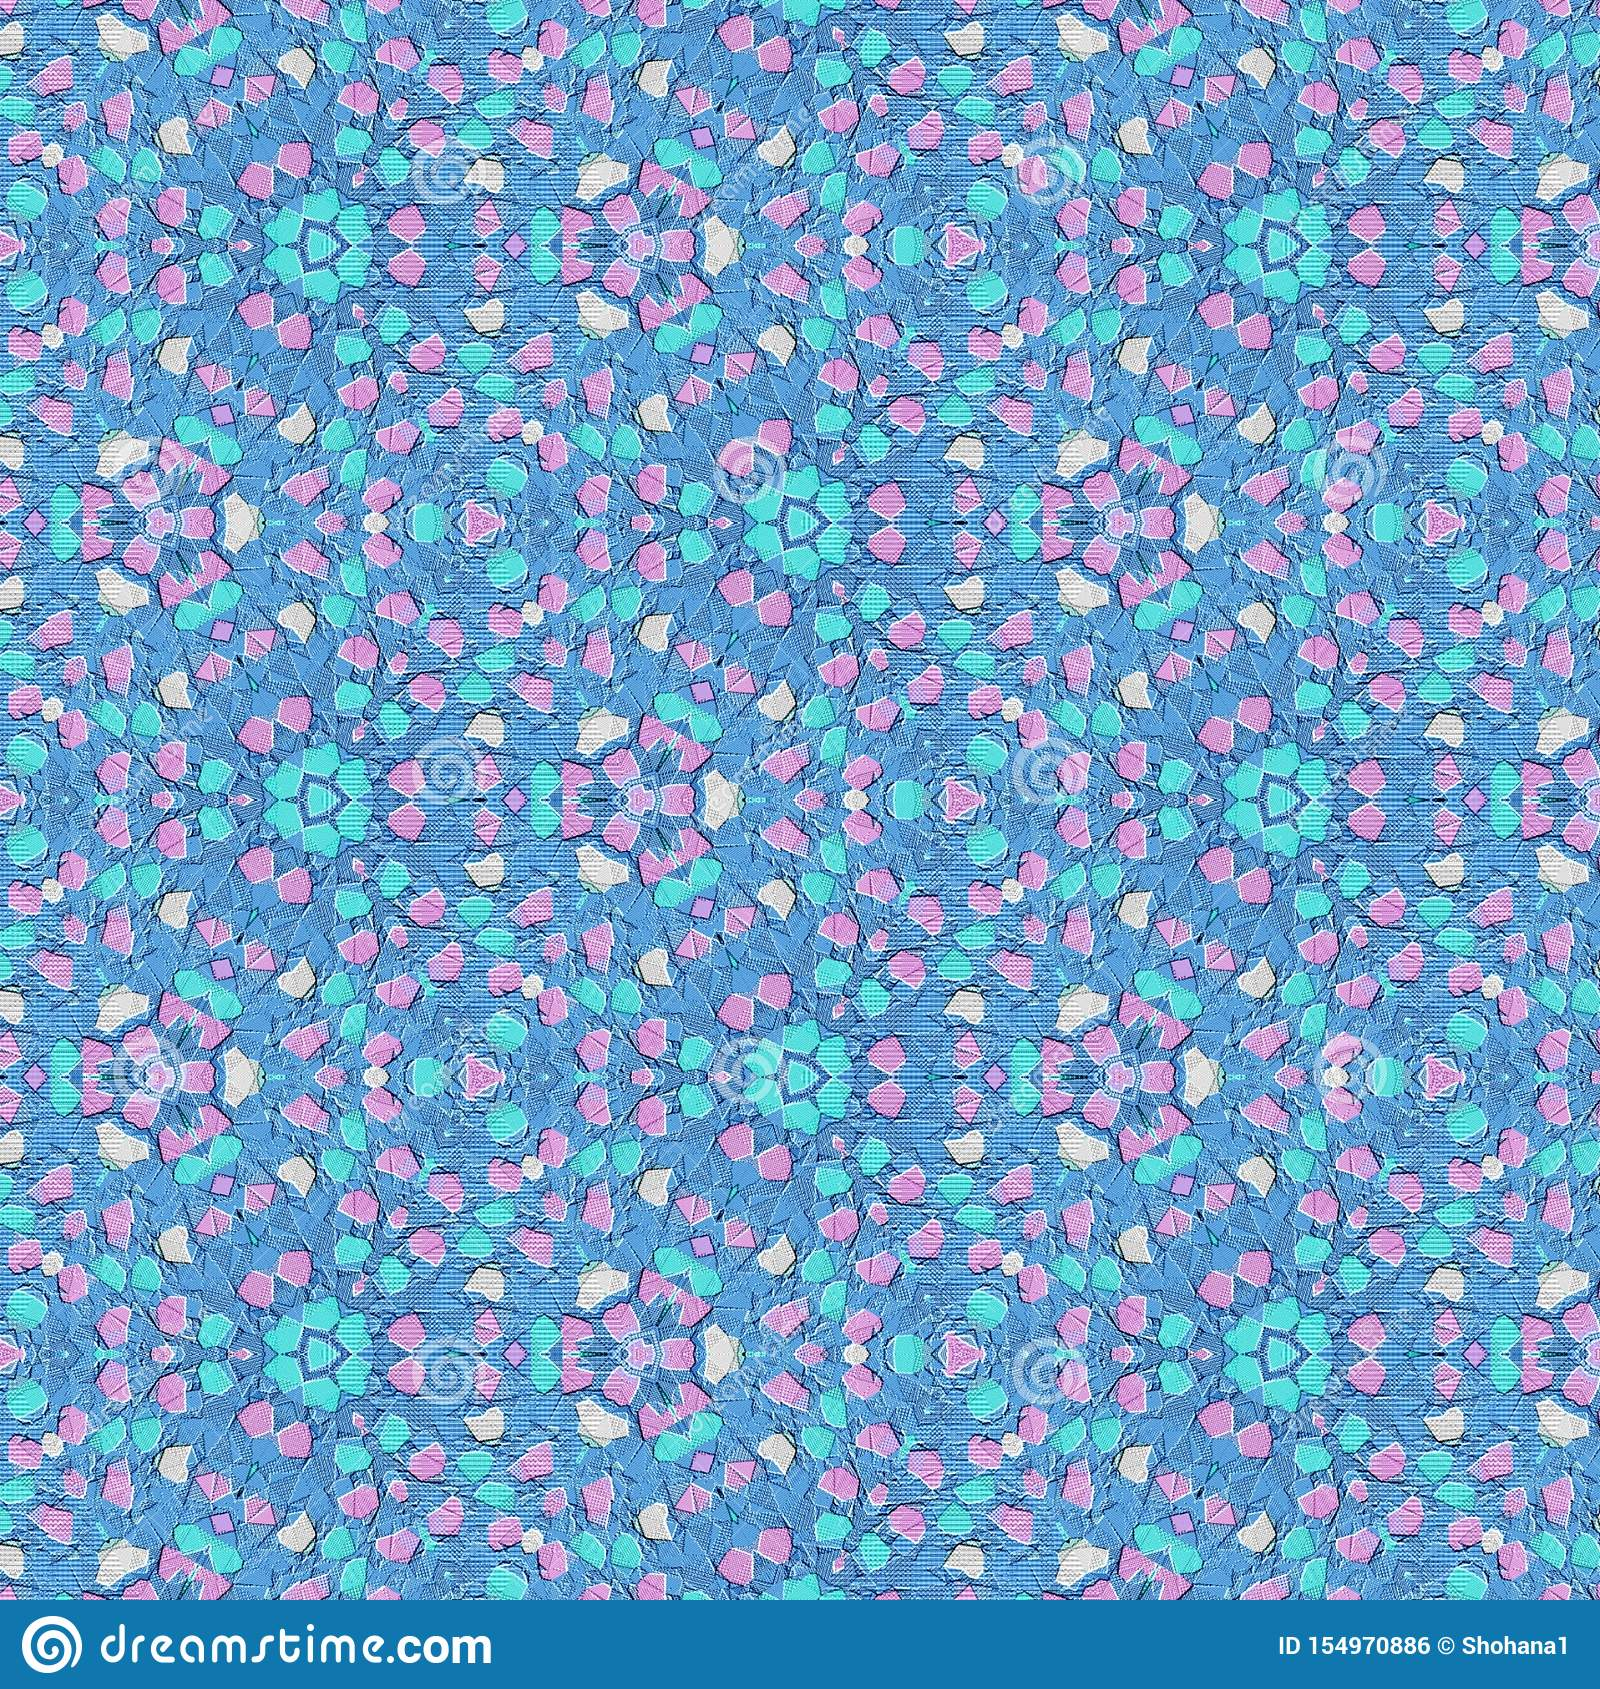 Wonderful Light Blue And Pink Floral Abstract Textured